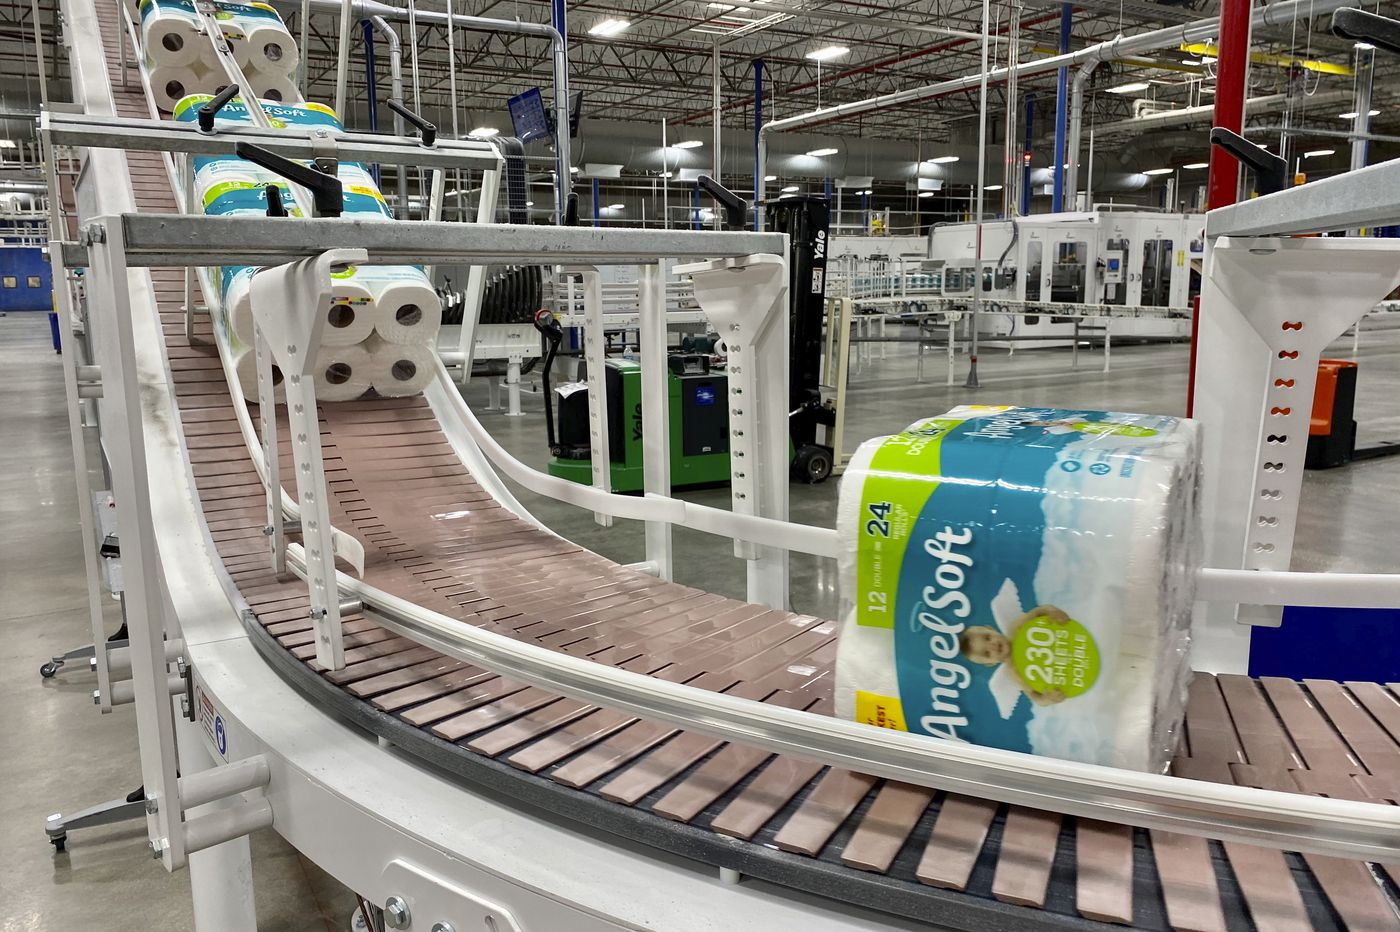 Amazon is playing whack-a-mole with coronavirus price gouging, and it's harming Pennsylvanians | Opinion